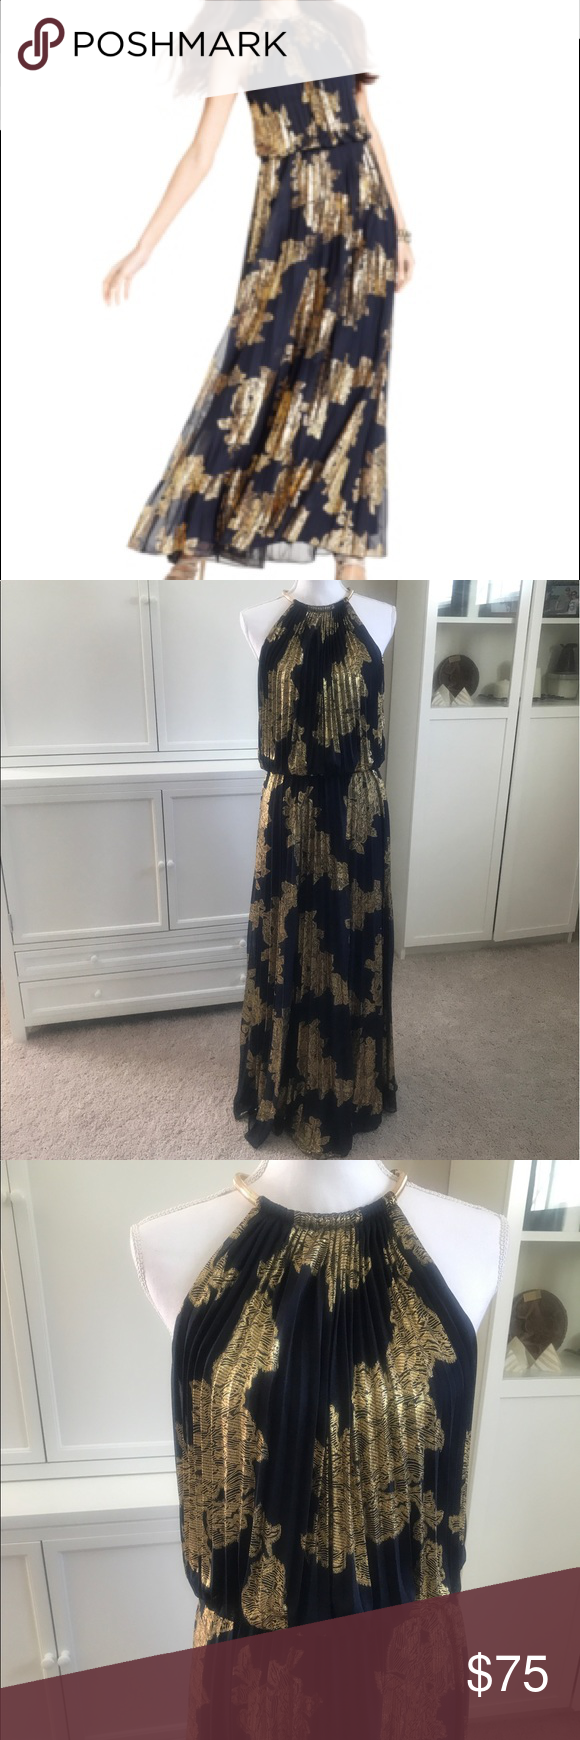 220f7c203ae Xscape pleated foil Printed navy halter dress Size 8 and in near perfect  condition. There